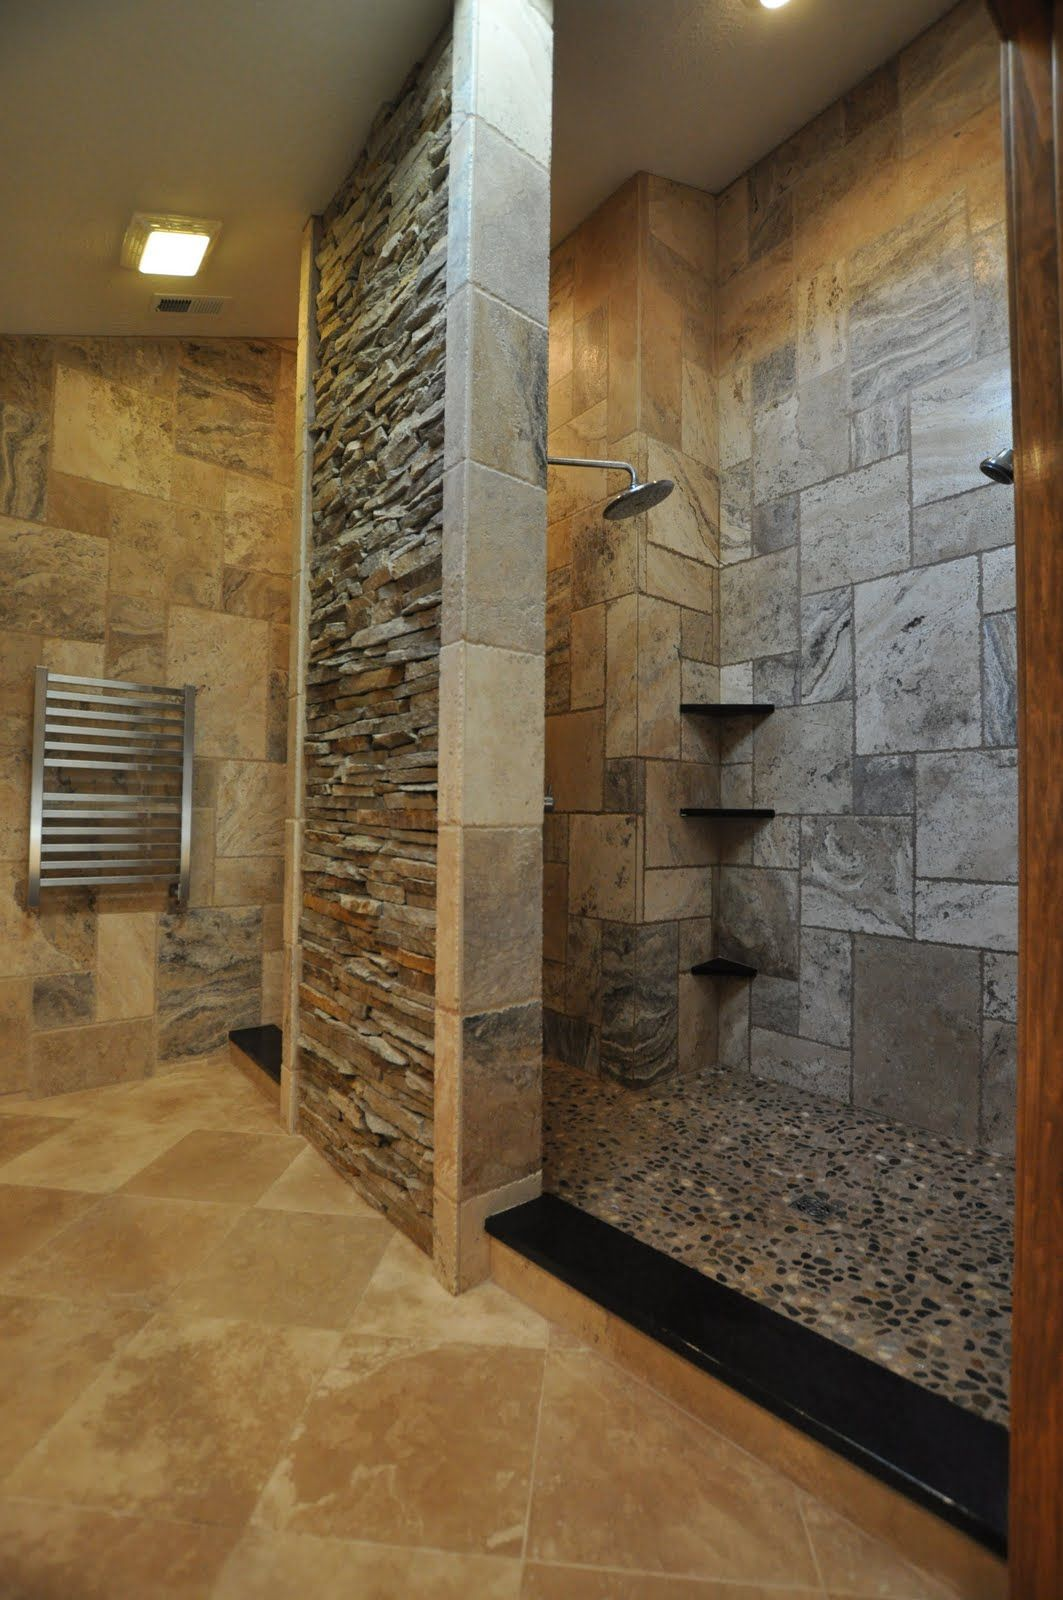 Stone Wall Instead Of Shower Doors Makes For A Great Walk In